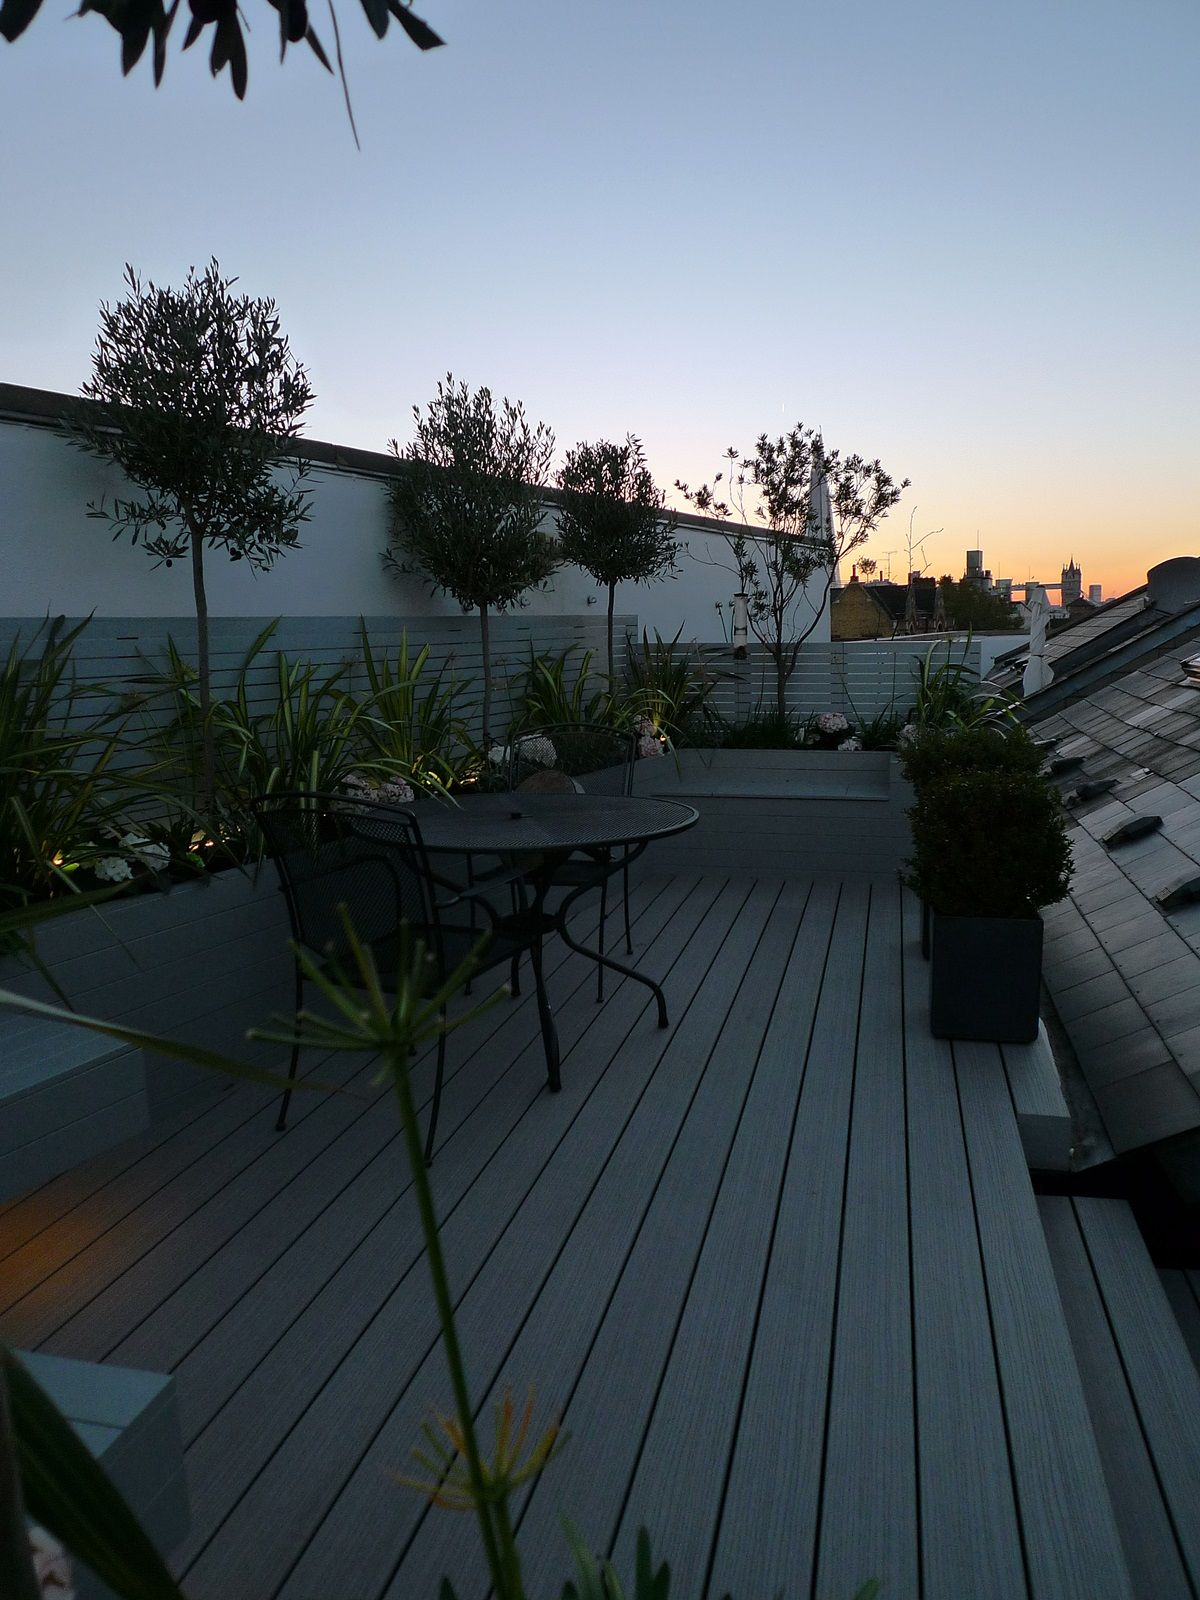 Garden Designers London Painting New Roof Garden Design London Composite Decking Hardwood Painted . Decorating Design